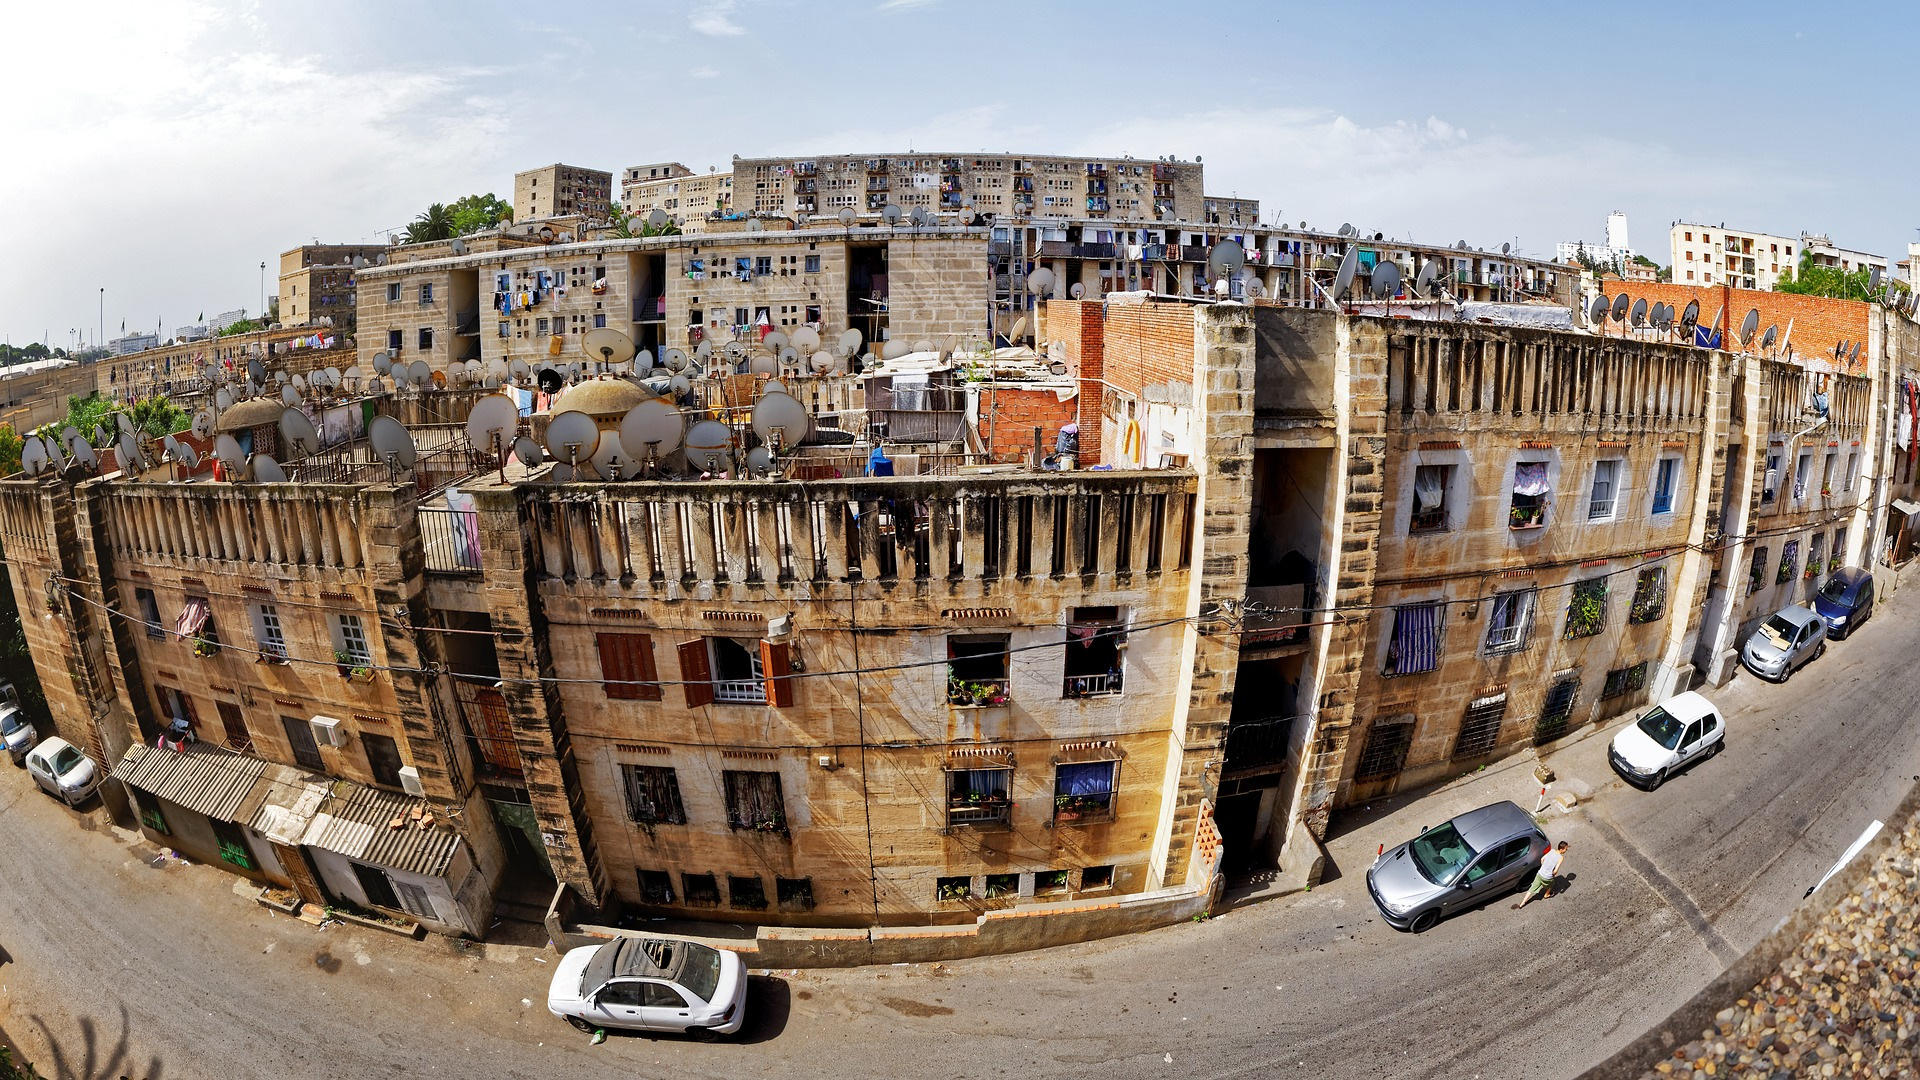 Panoramic image of old Algerian housing blocks with cars parked on the street